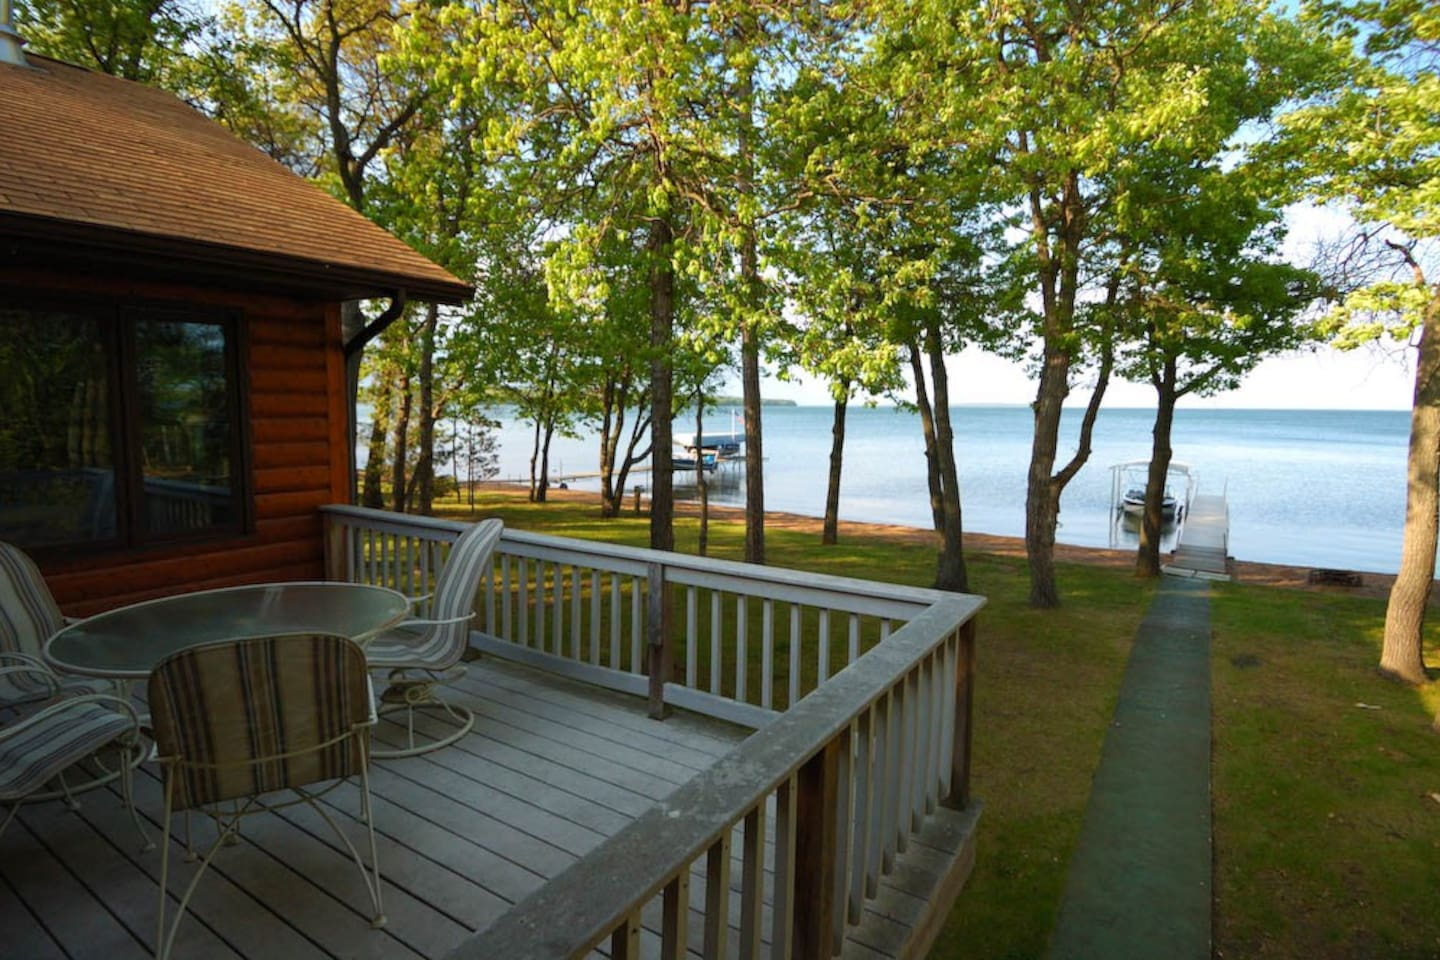 Loon Lodge on Leech Lake view from the deck